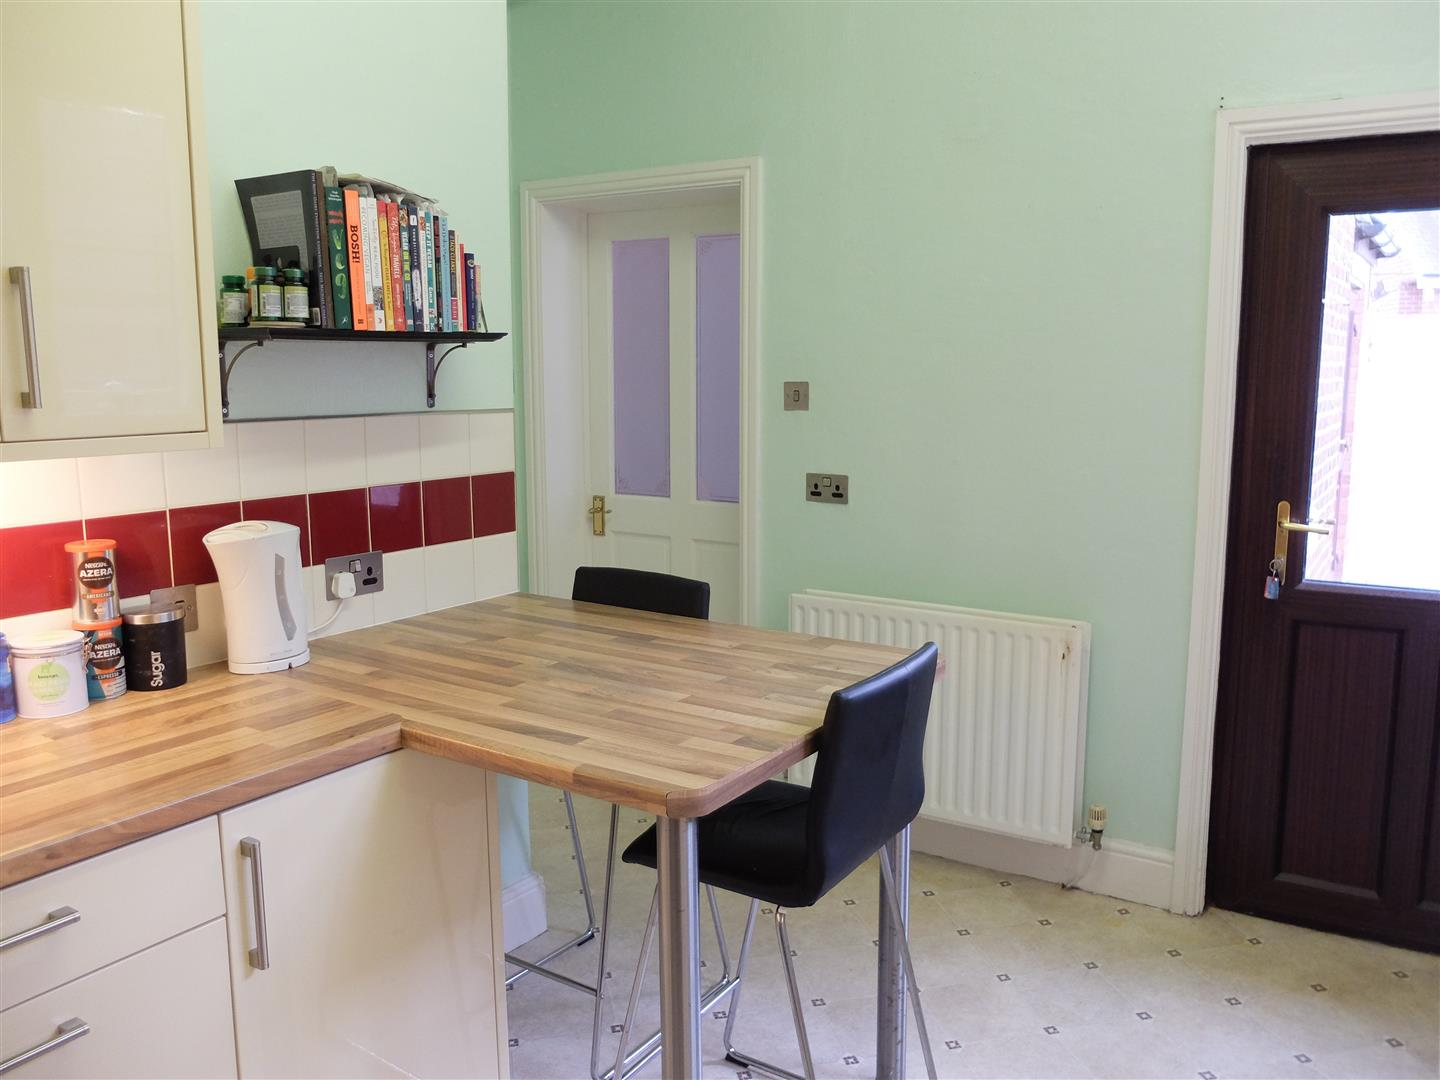 2 Bedrooms House - End Terrace For Sale 26 The Green Carlisle 180,000